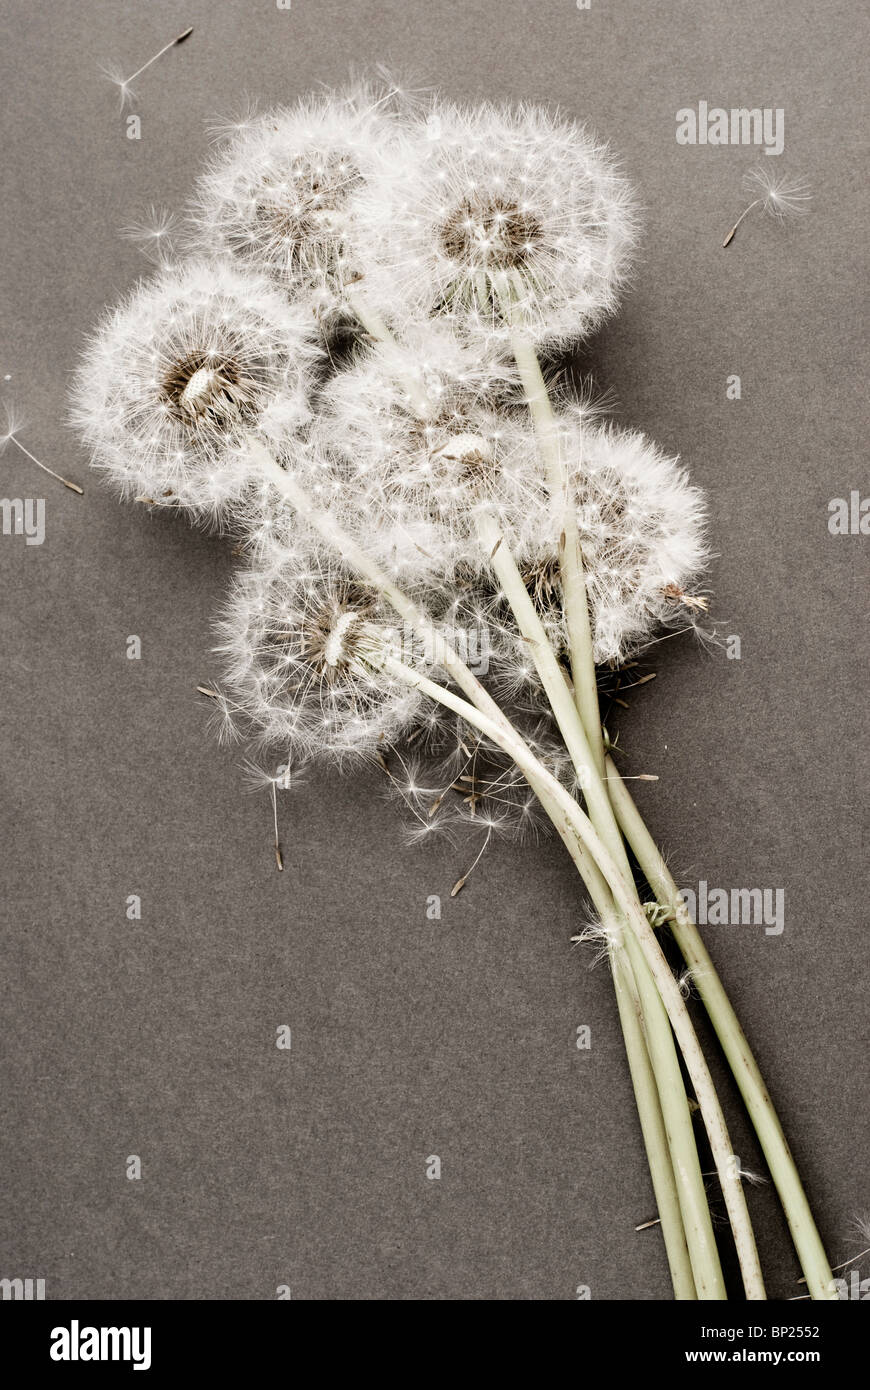 Bunch of Dandelion flowers on gray background Stock Photo